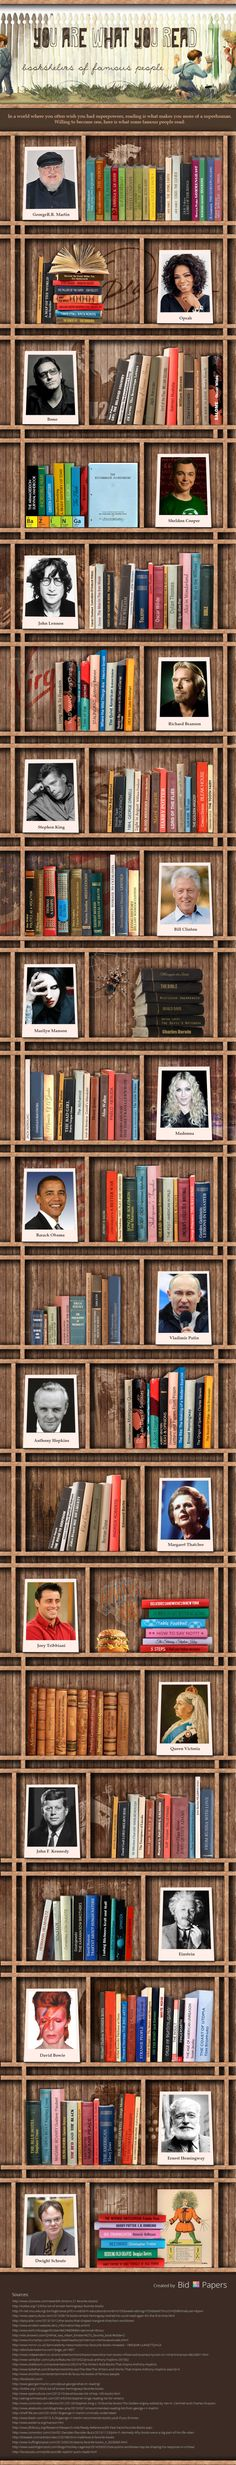 For your inspiration: reading lists of famous people (infographic)